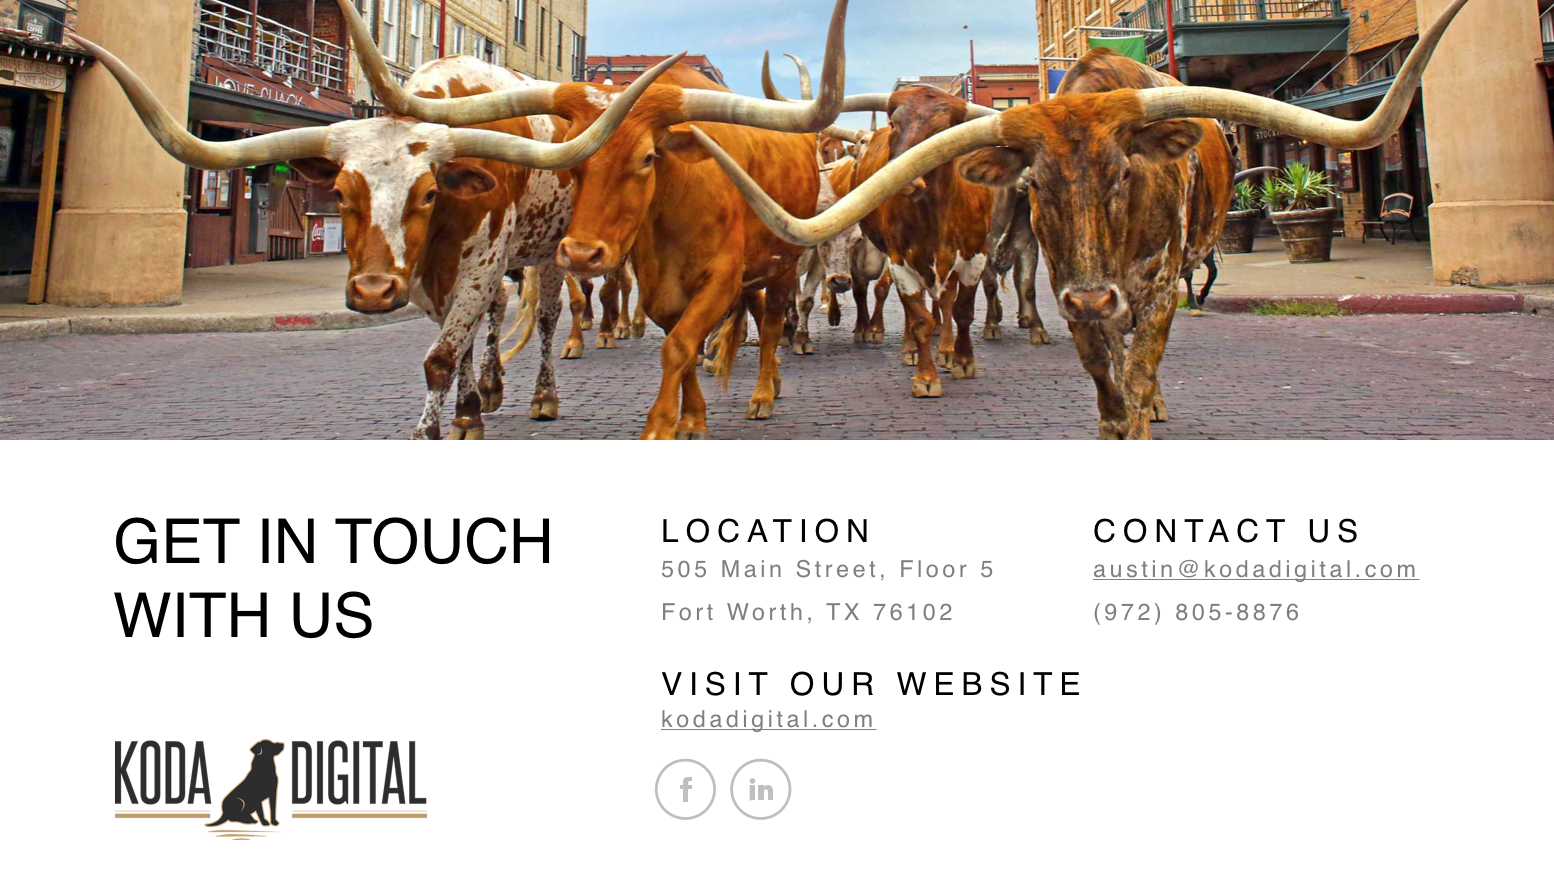 Visual aid made by Koda Digital giving information of agency's location, website, and contact information with also a decorative Fort Worth, Tx imagery.